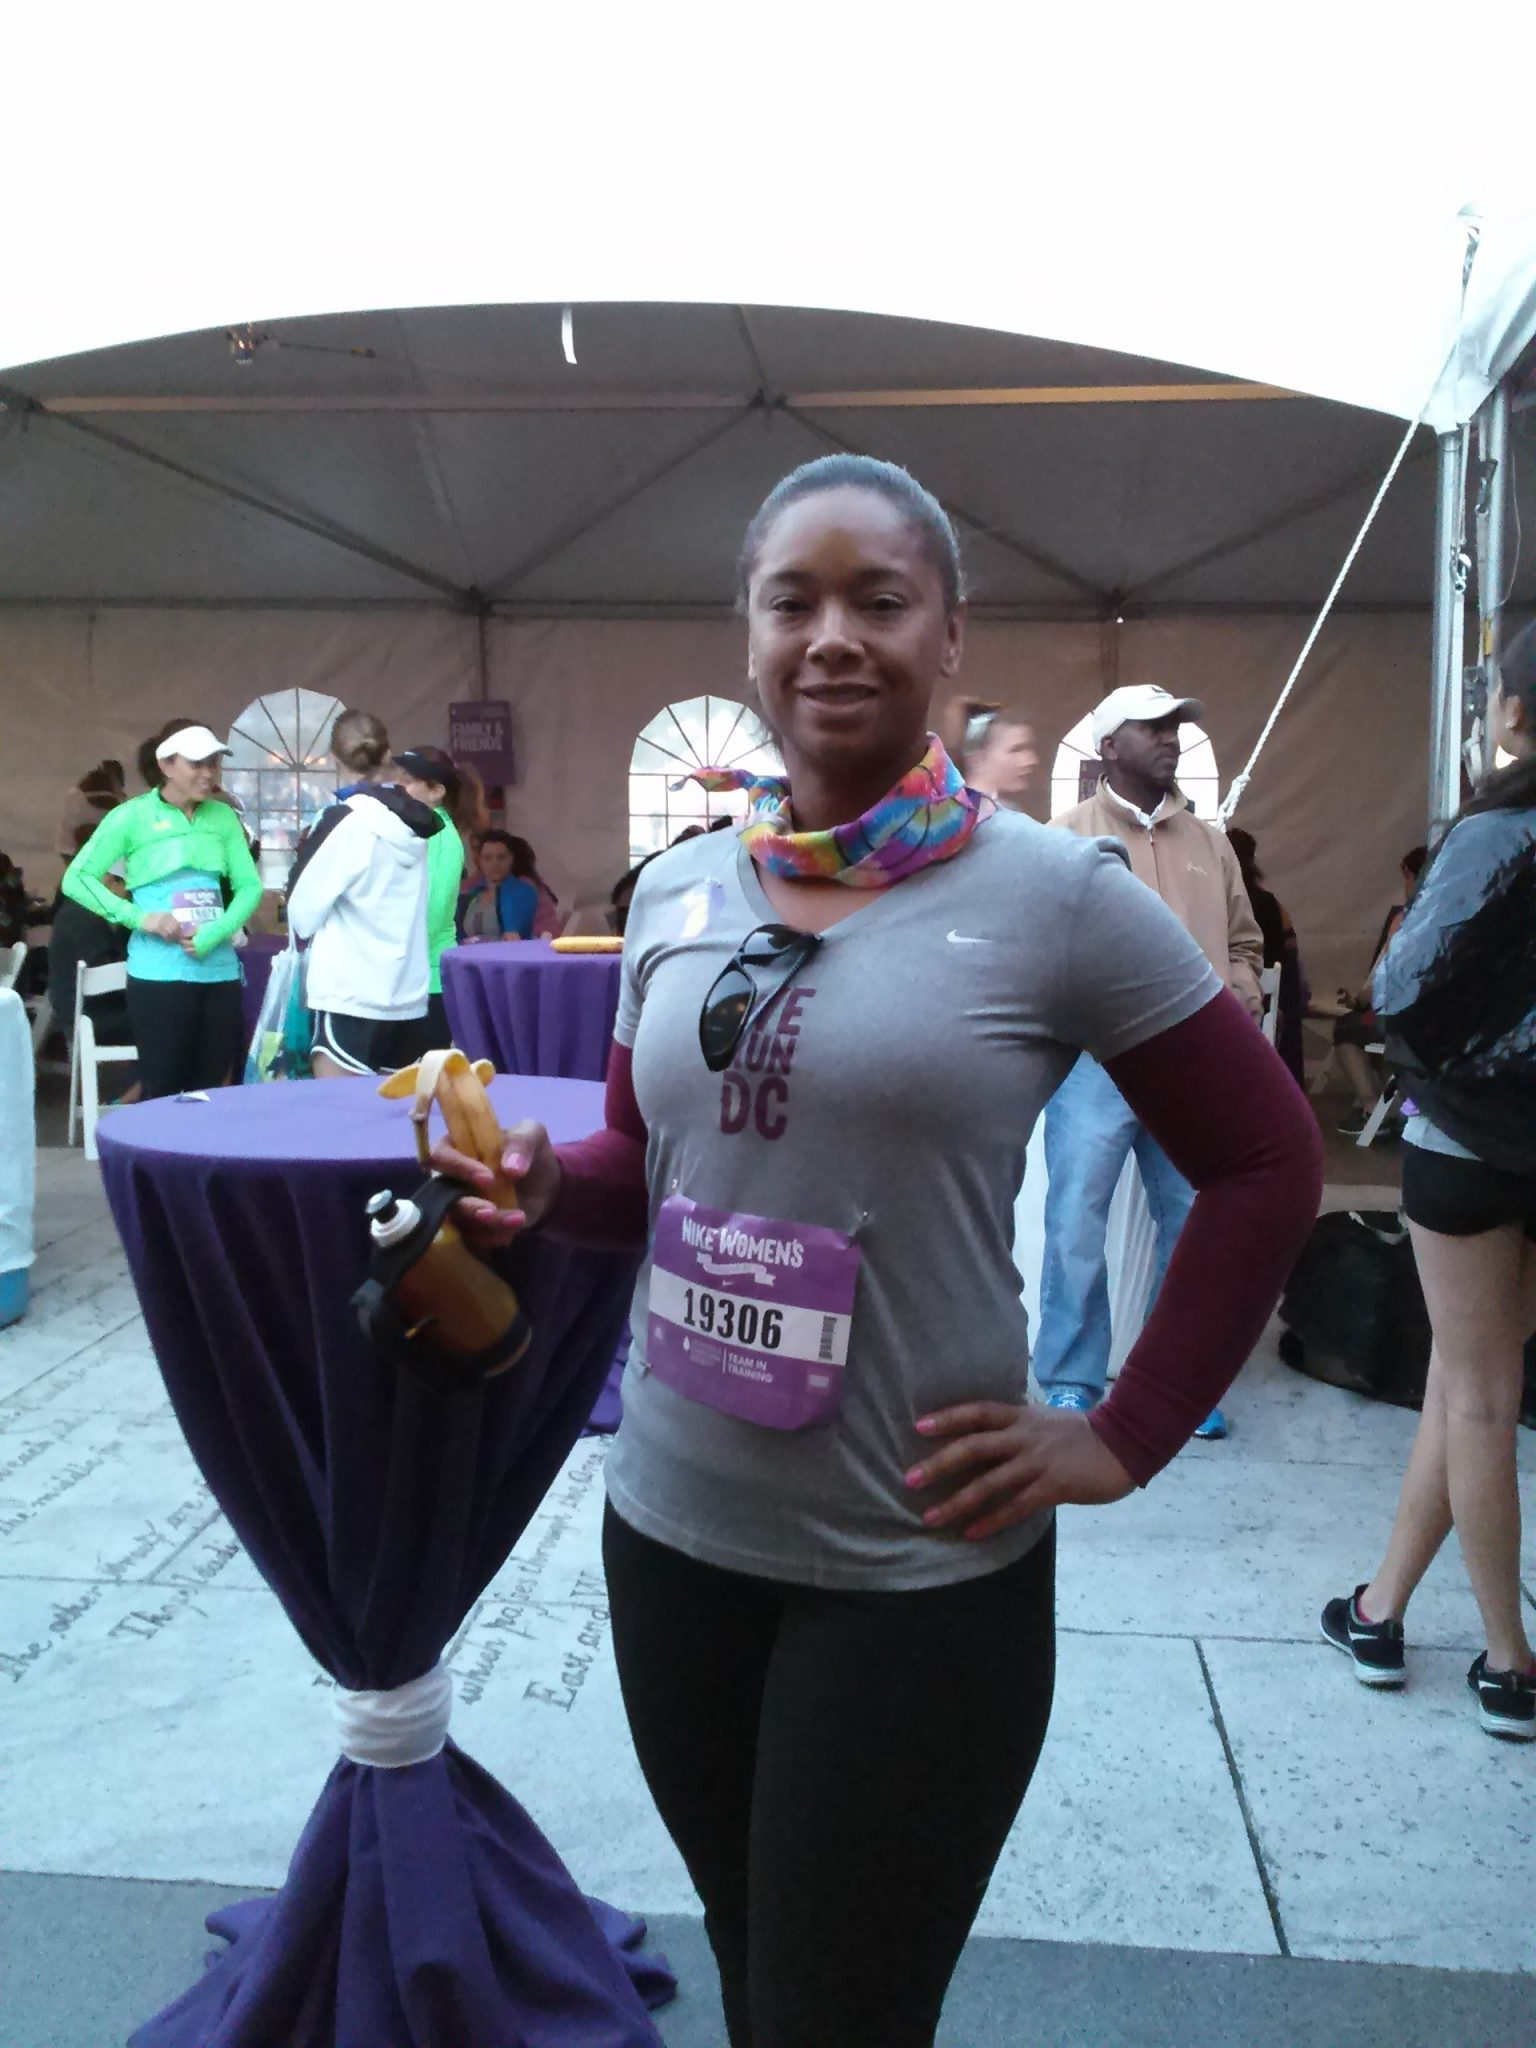 Meisha ran the Nike Women's Half Marathon in Washington, D.C. as a Team In Training member.